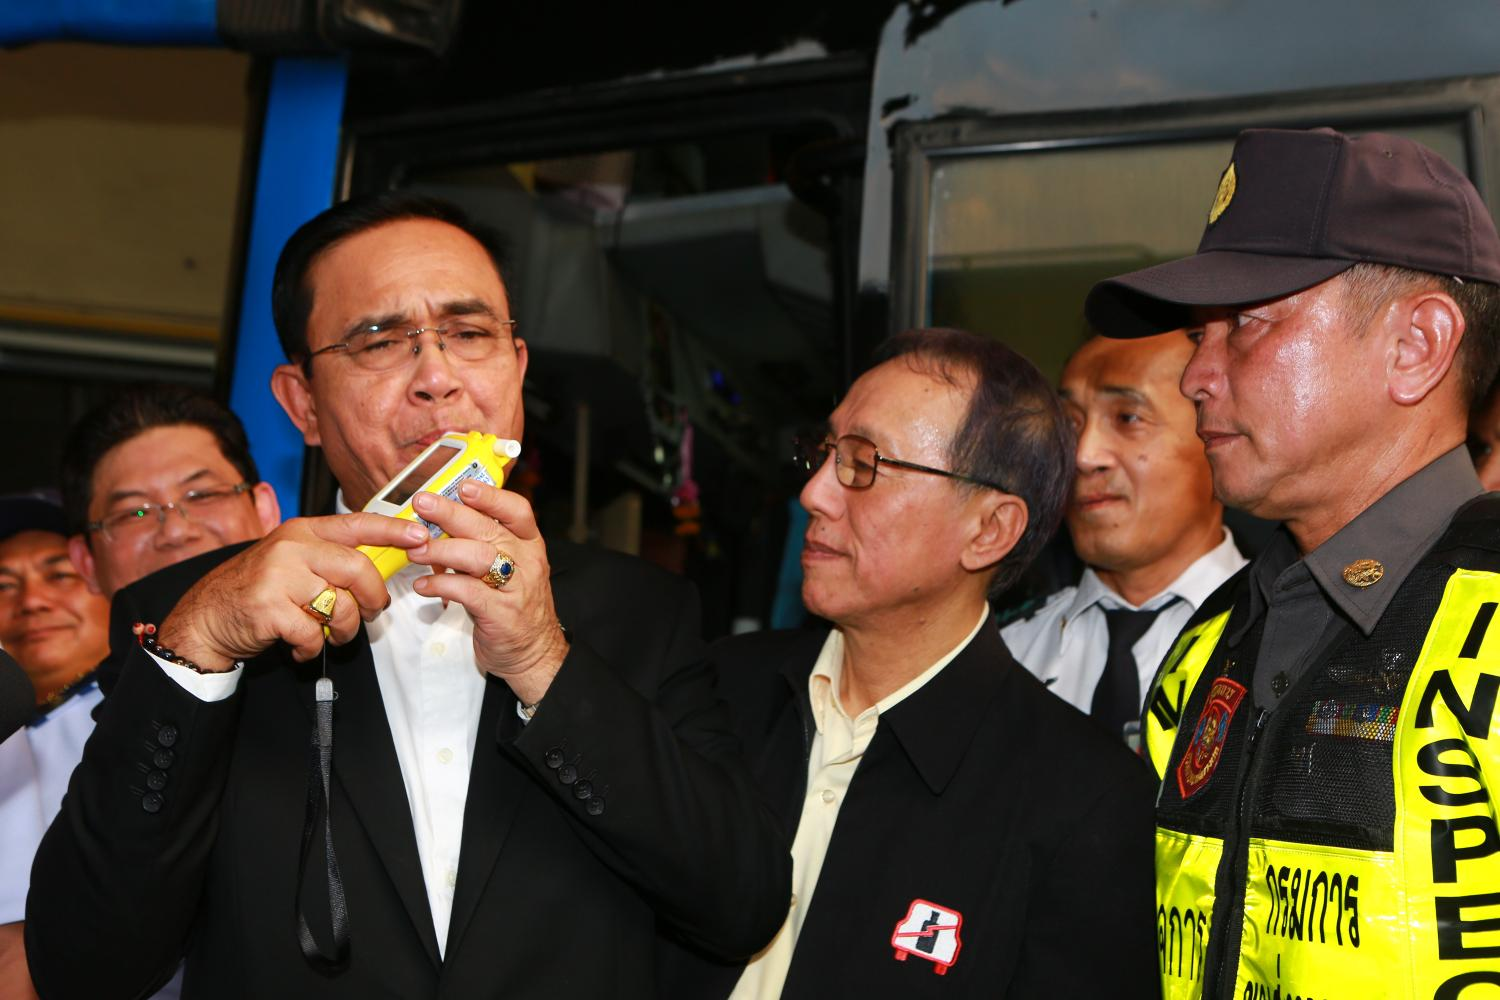 Prime Minister Prayut Chan-o-cha blows into a breathalyser as he kicks off a road safety campaign at Bangkok's Mor Chit bus terminal on Thursday. (Photo by Somchai Poomlard)